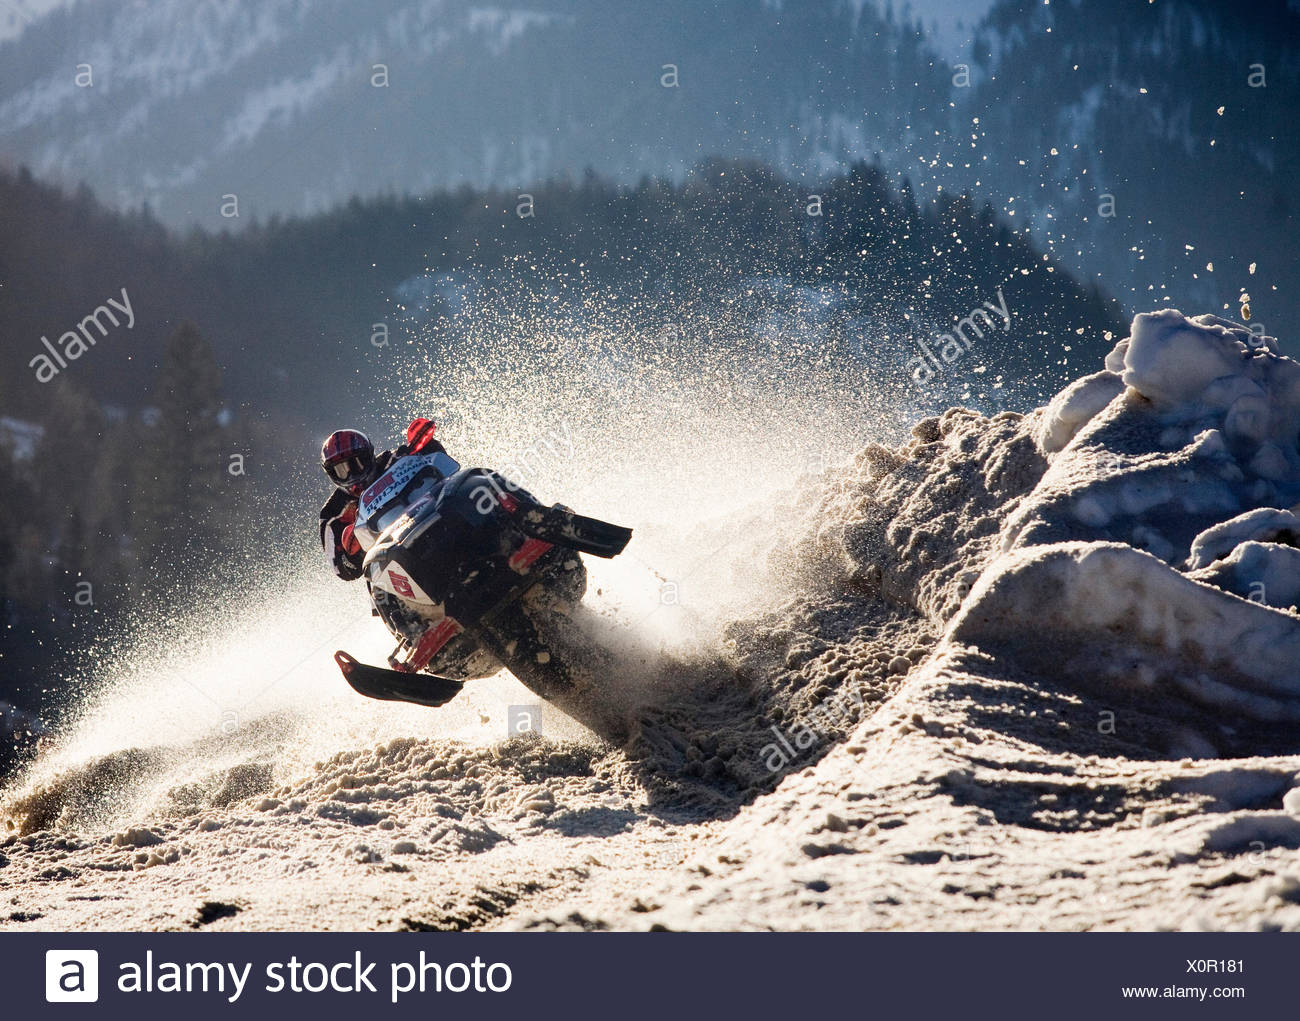 Snow mobile or ski-doo rider jumping into a curve, Achenkirch, Achensee Lake or Lake Achen, North Tyrol, Austria - Stock Image